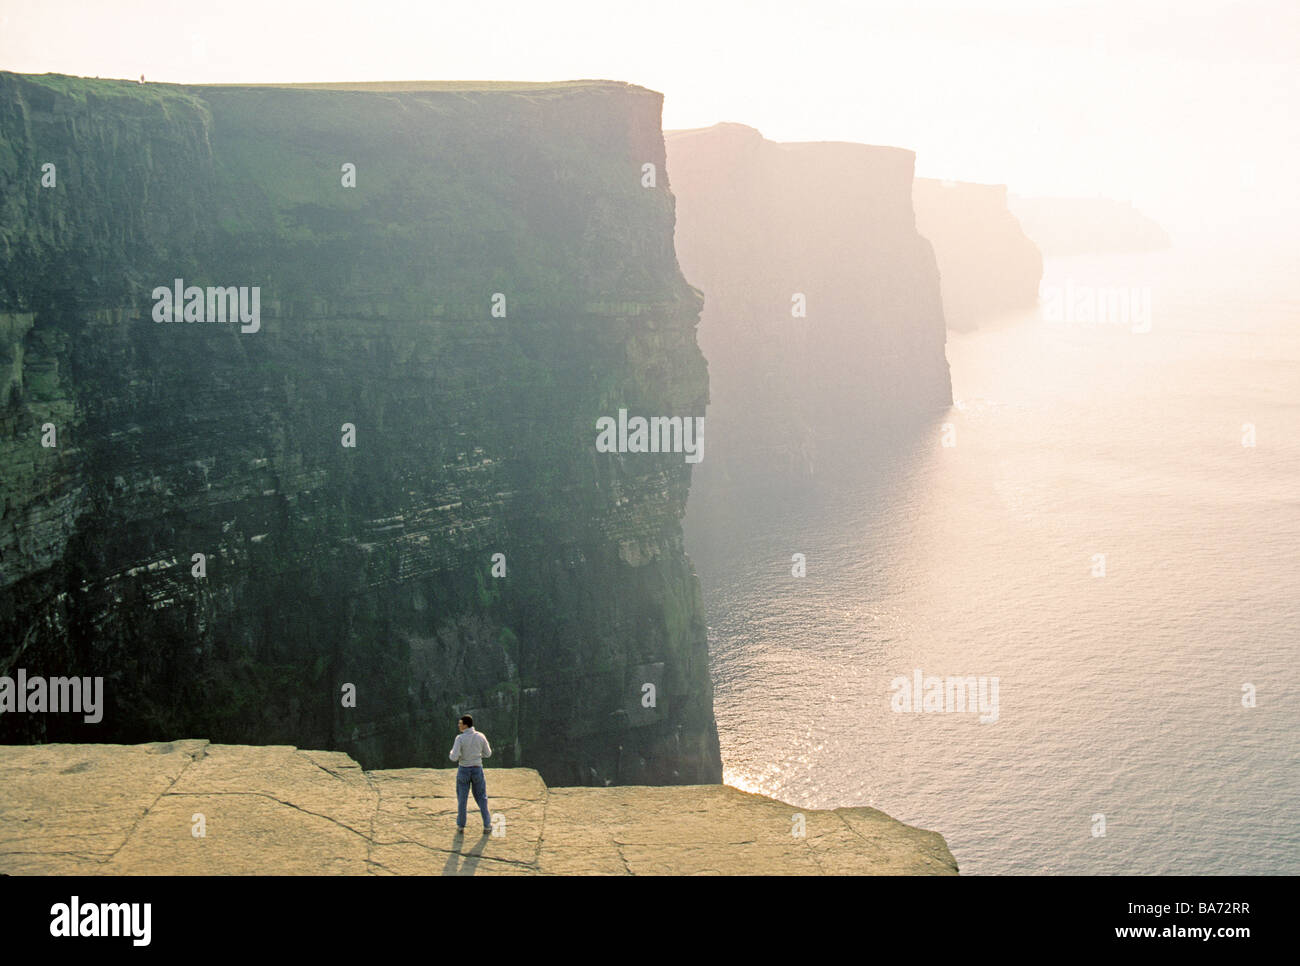 Ireland's Cliffs of Moher in County Claire - Stock Image